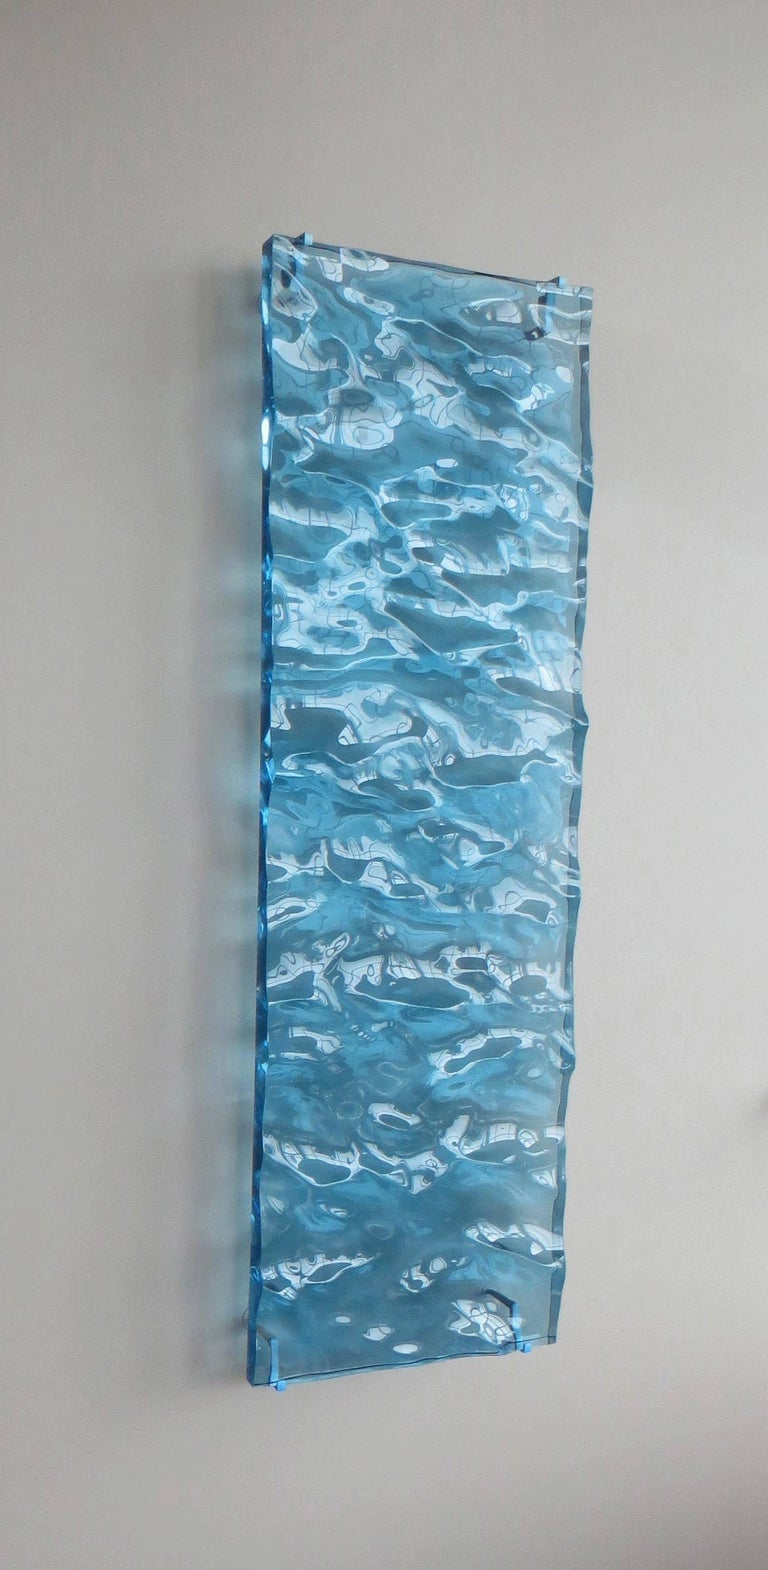 Carved Acrylic Sculpture (Blue) 48 x 15 x 2 inches Edition 1 of 5  When Collier creates a new water surface she starts with a brush that she builds with software. This brush is essentially a model of wind because wind is the source of waves in the